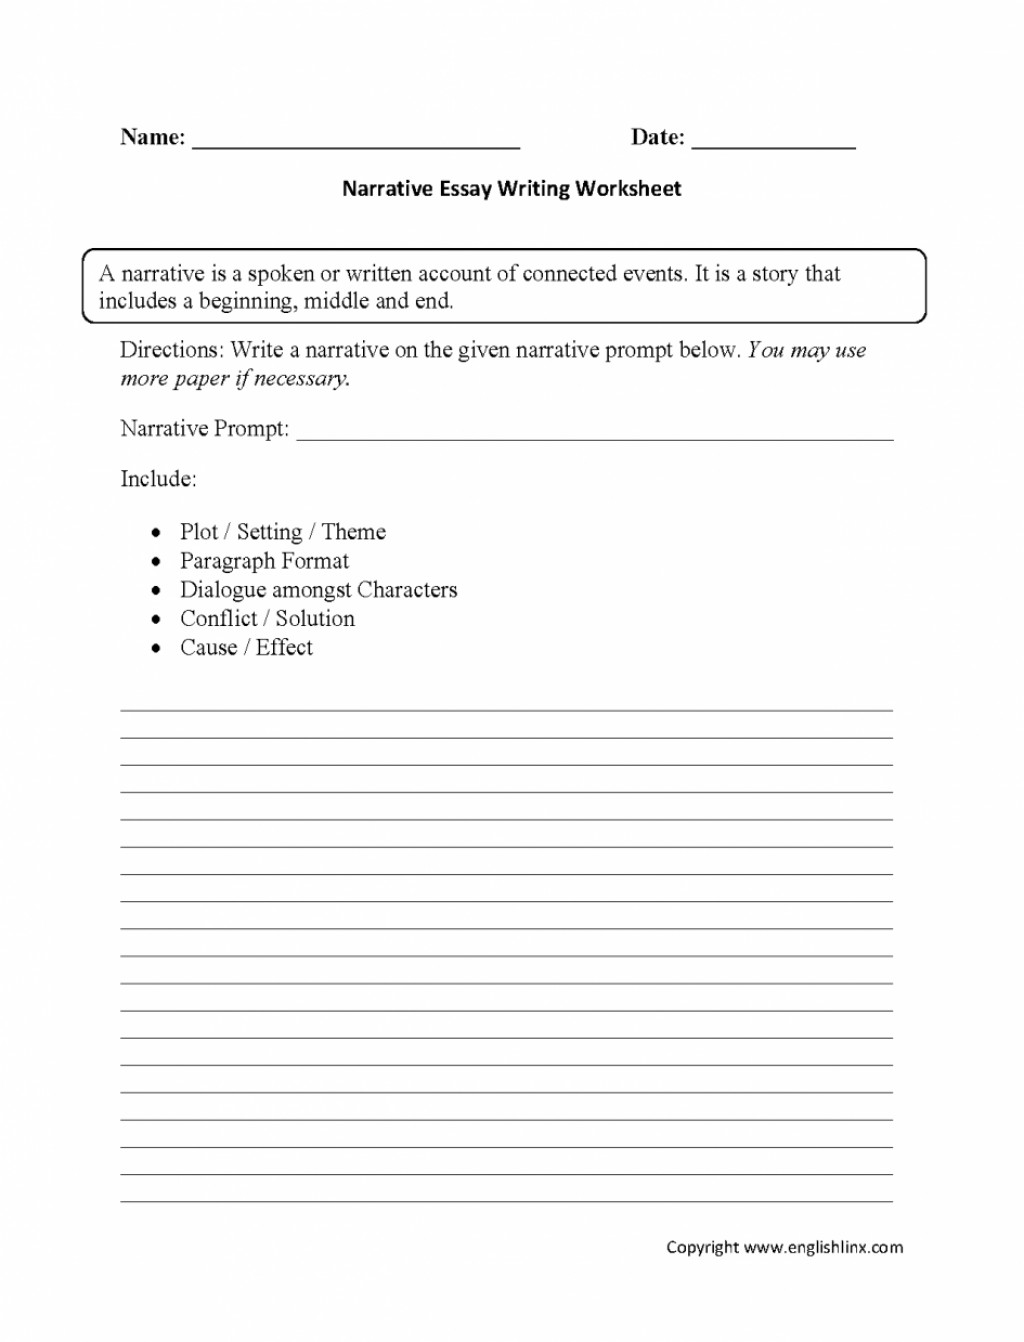 002 Essay Grader Free Example 3rd Grade Paragraph Writing Worksheets Download Third Printa Worksheet Unusual For Teachers Grading Software Large